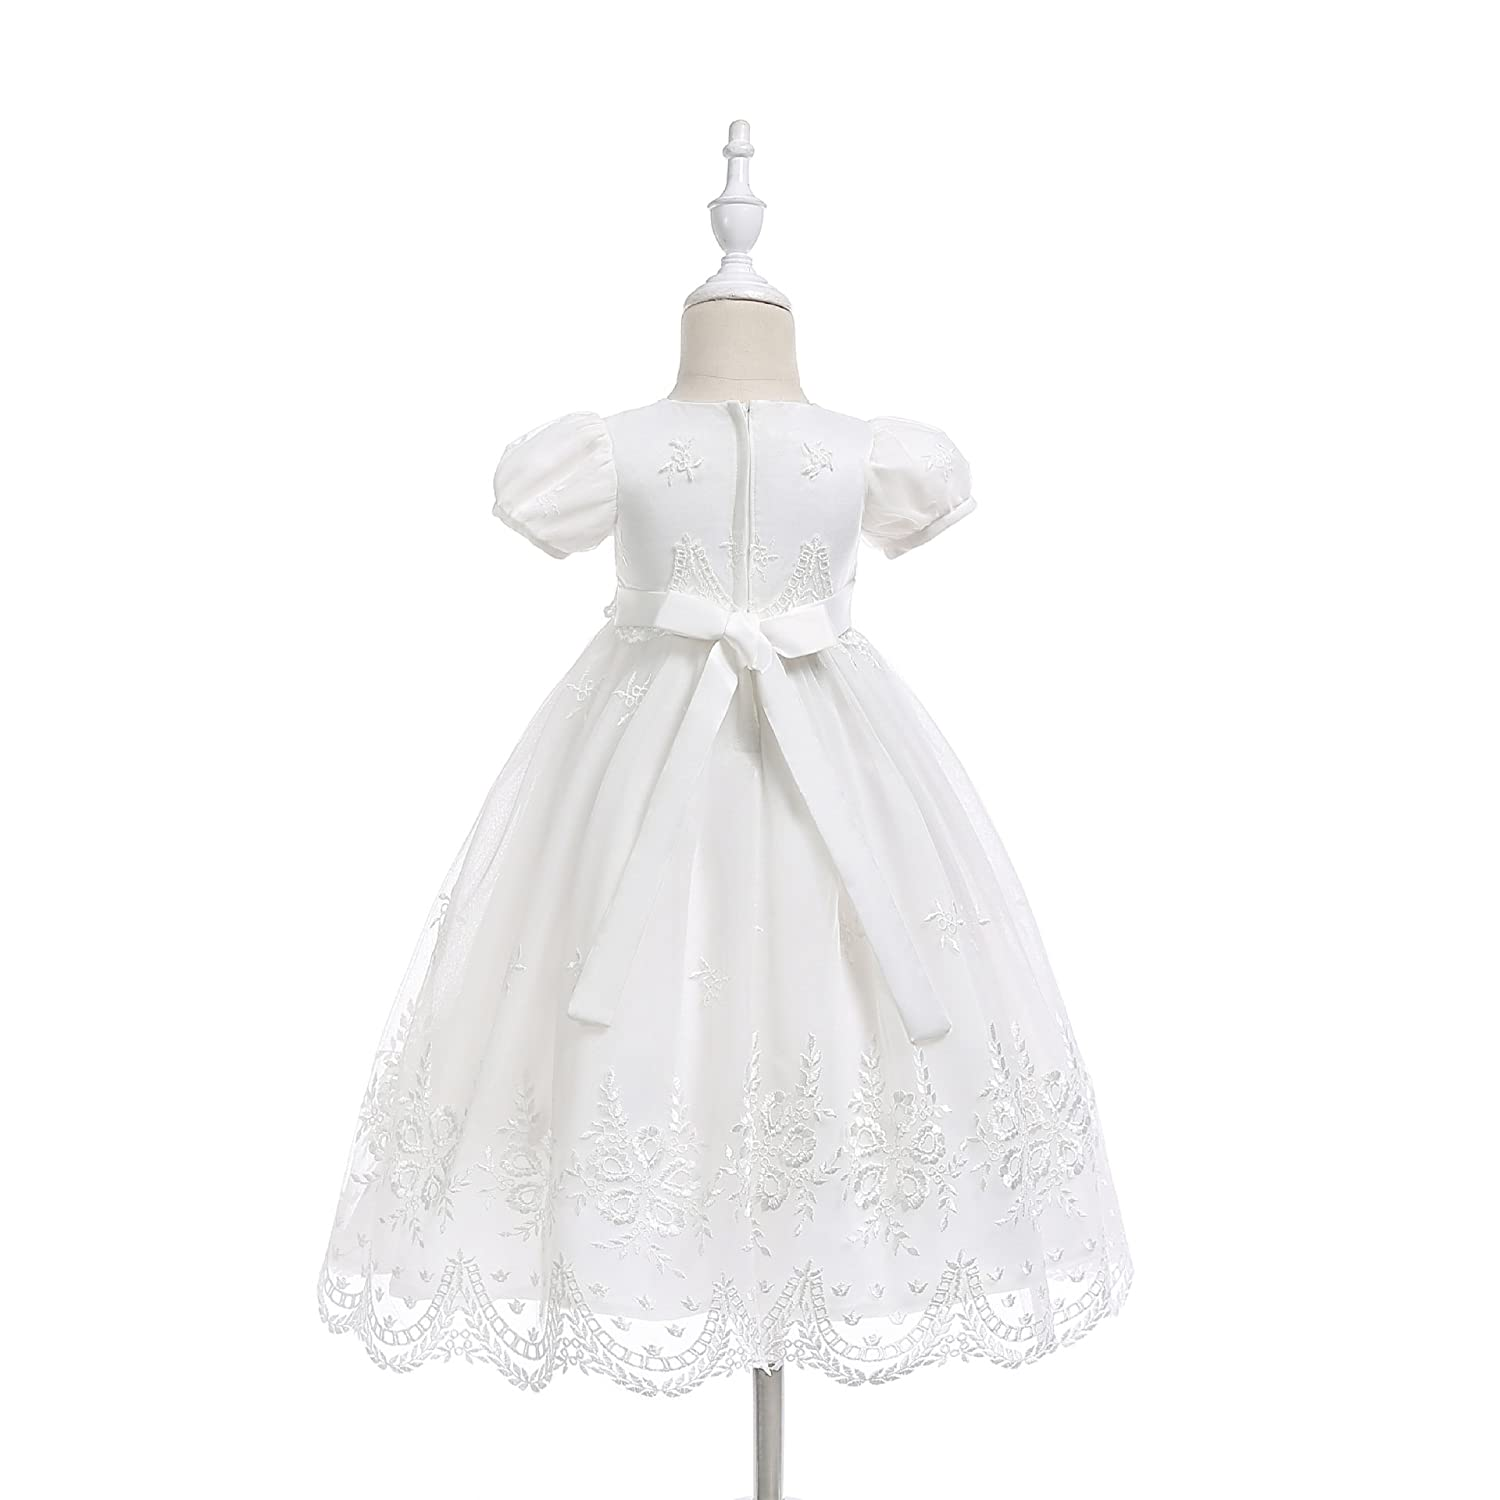 Glamulice Baby-Girls Newborn Satin Christening Baptism Floral Embroidered Dress Gown Outfit